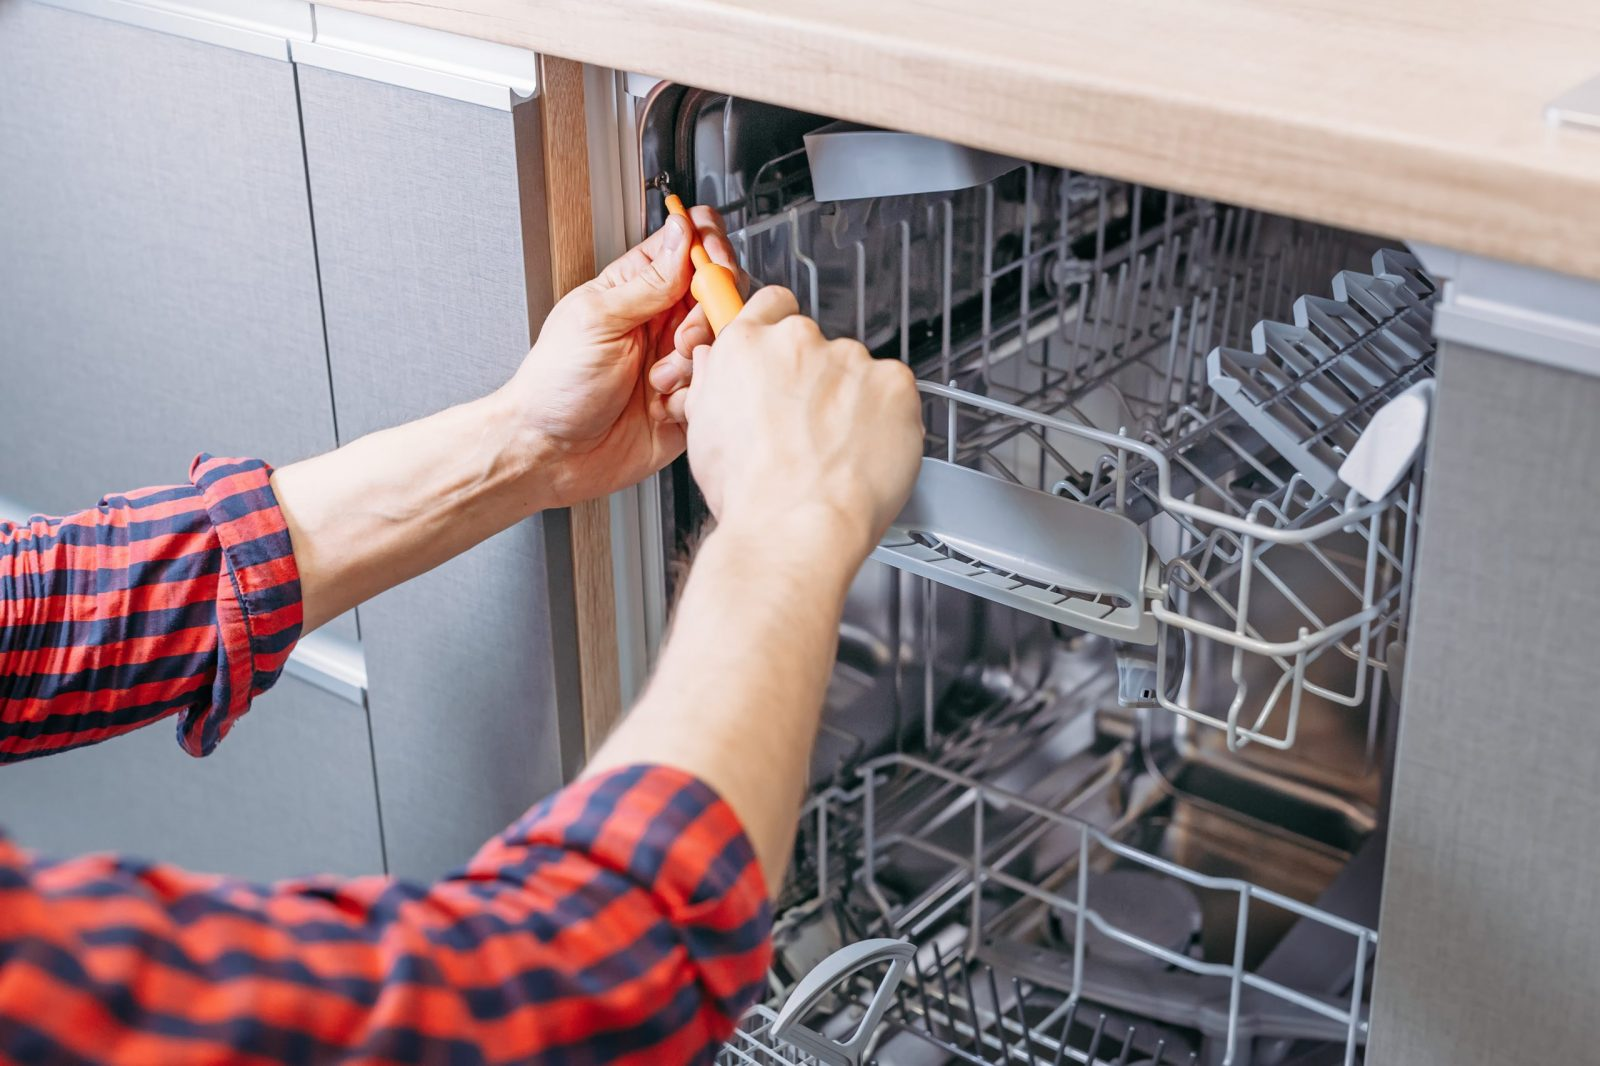 should your appliance be repaired or replaced